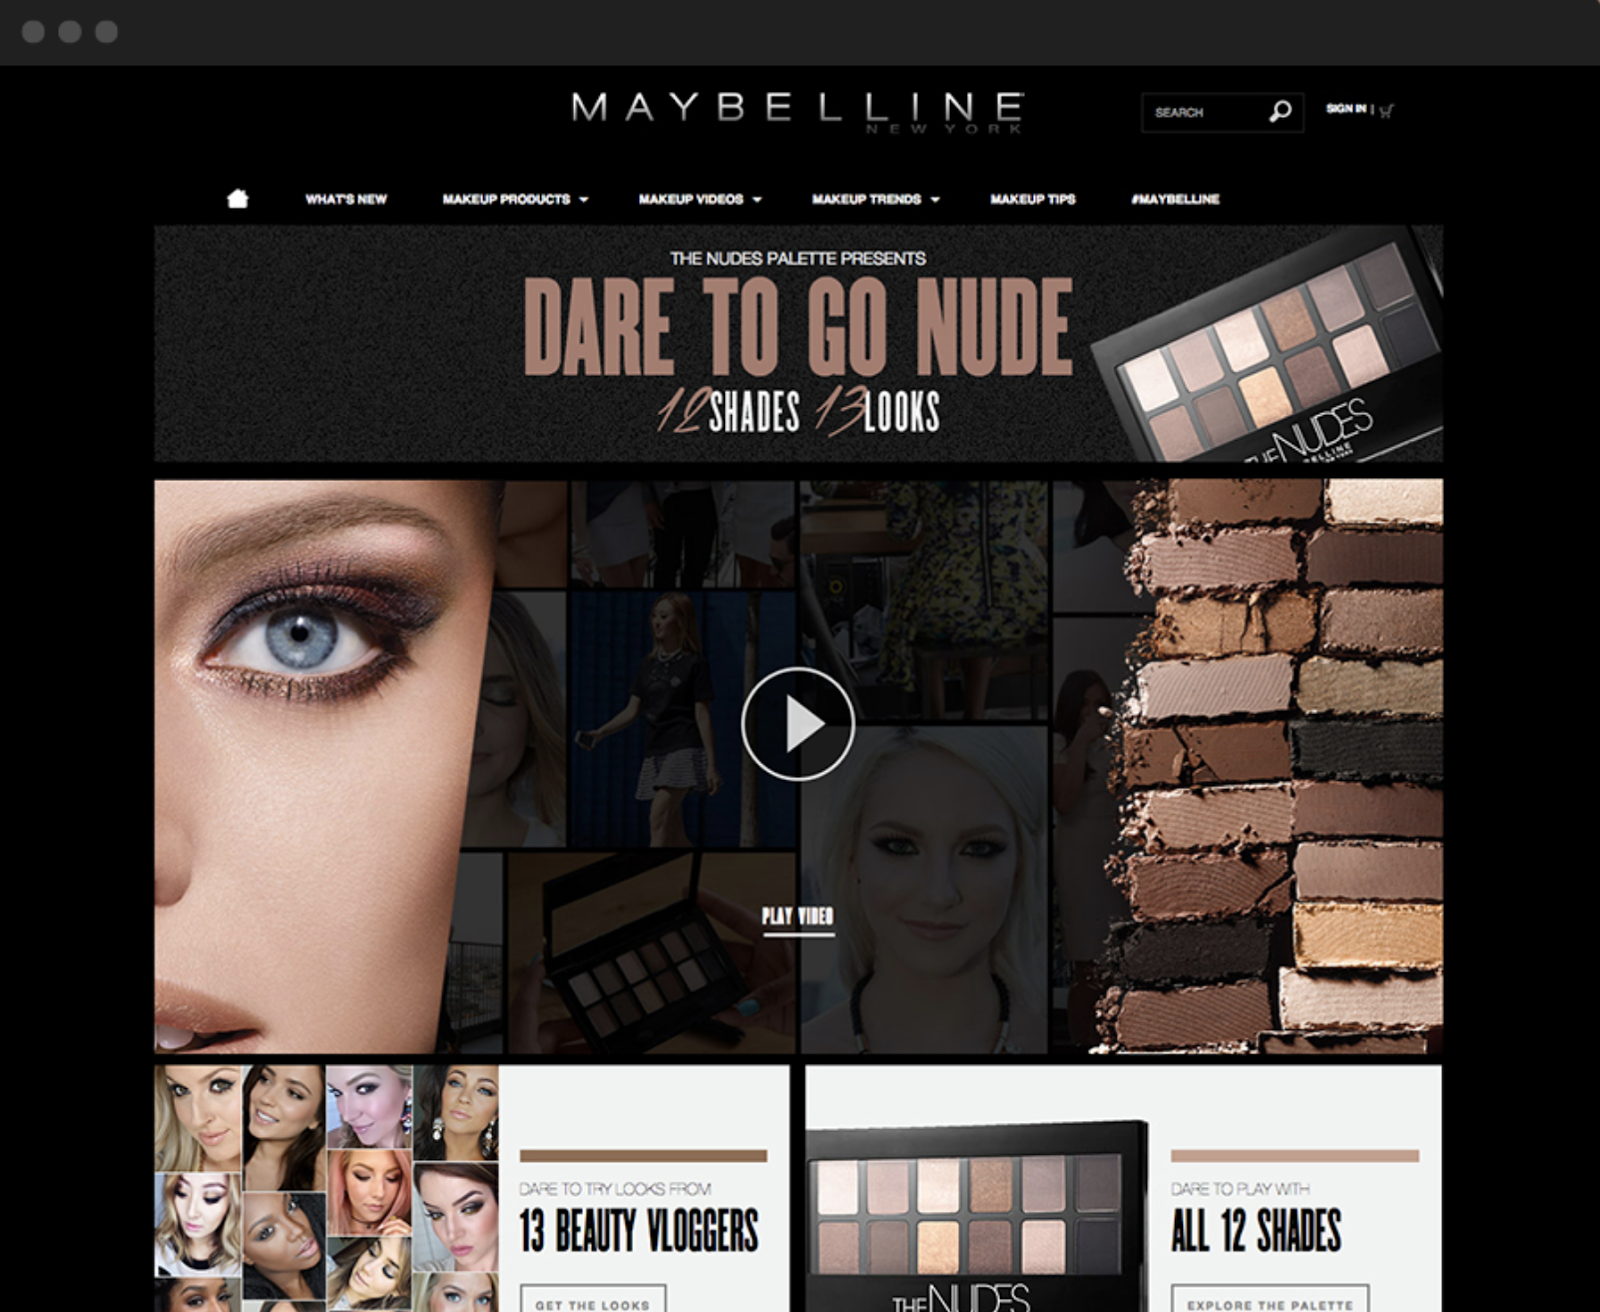 Maybelline nude makeup campaign features dramatic eyeshadow